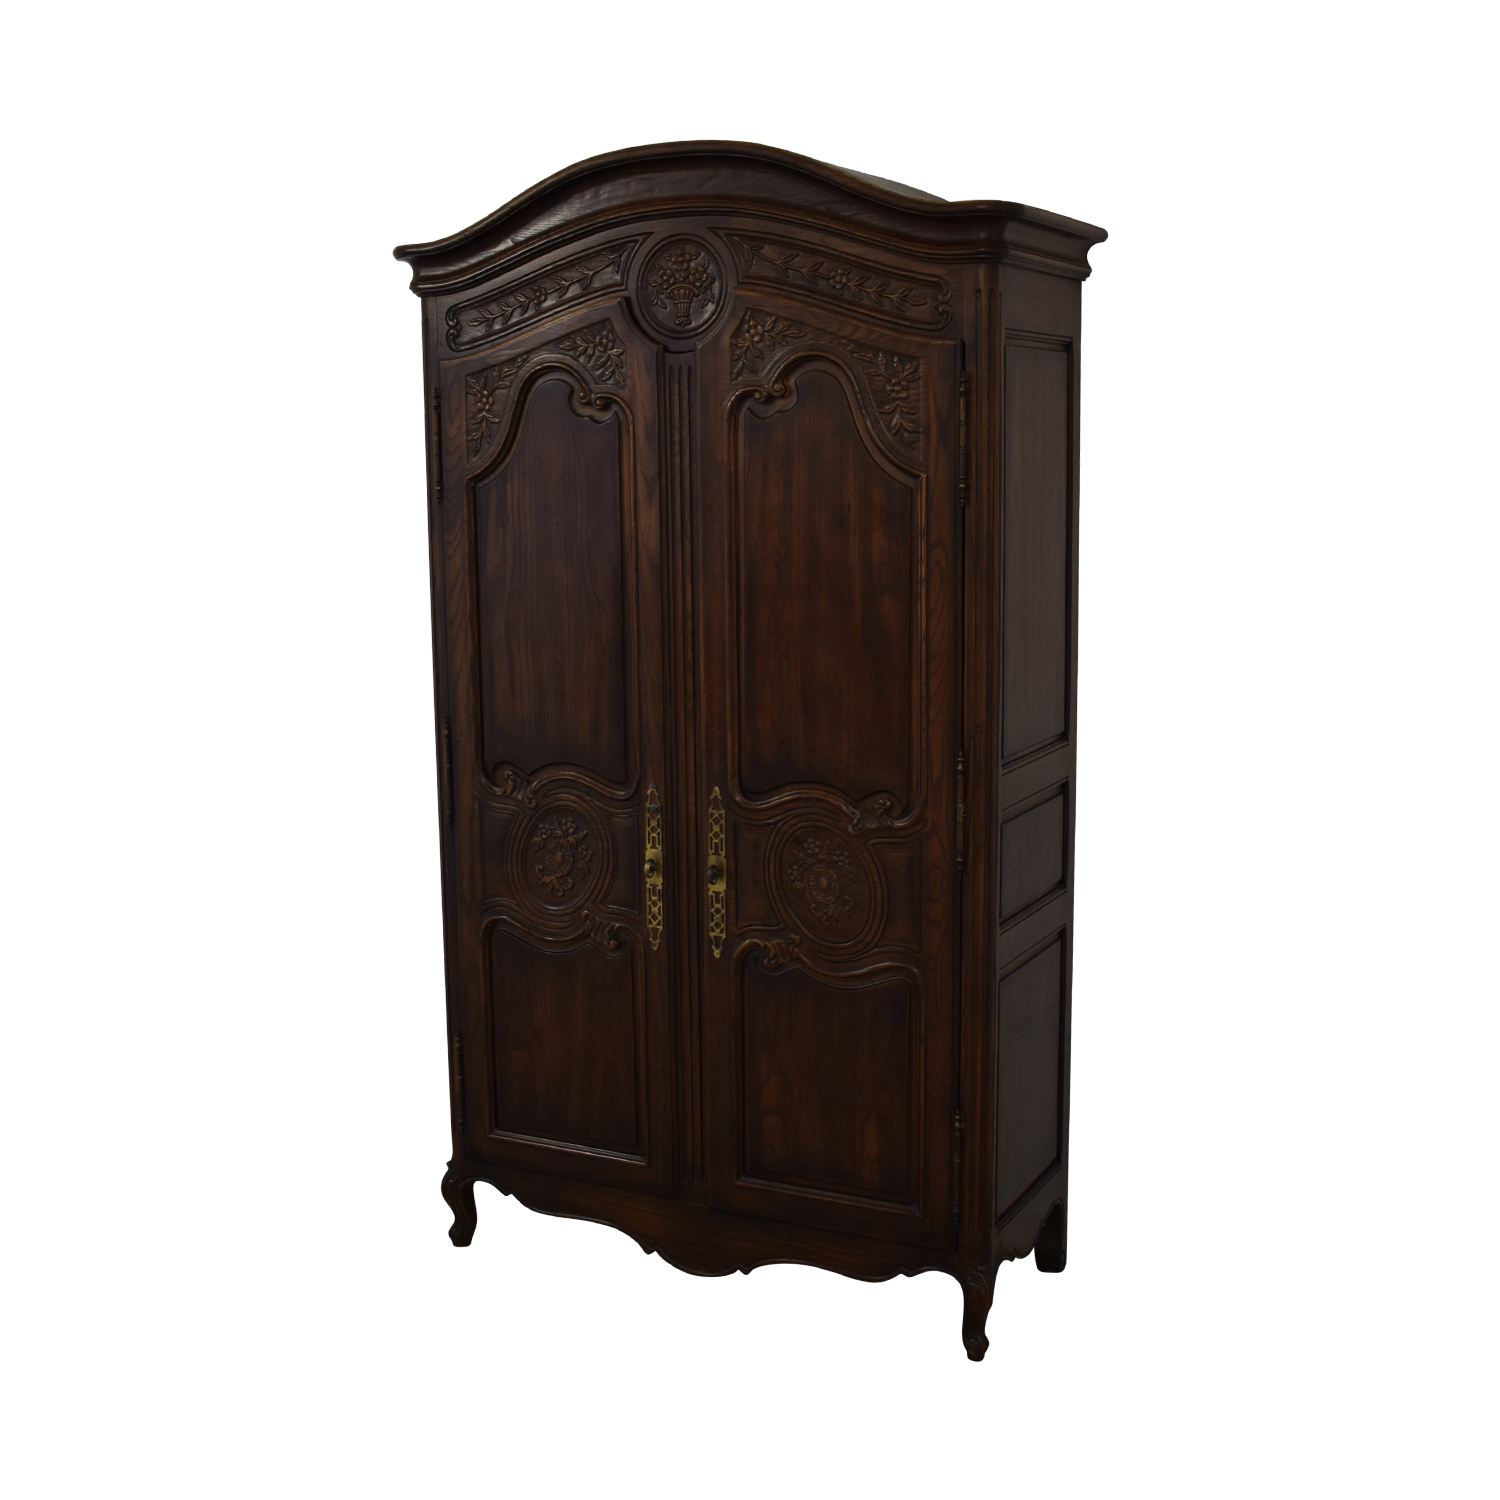 Henredon Furniture Henredon French Country Two Door Armoire used